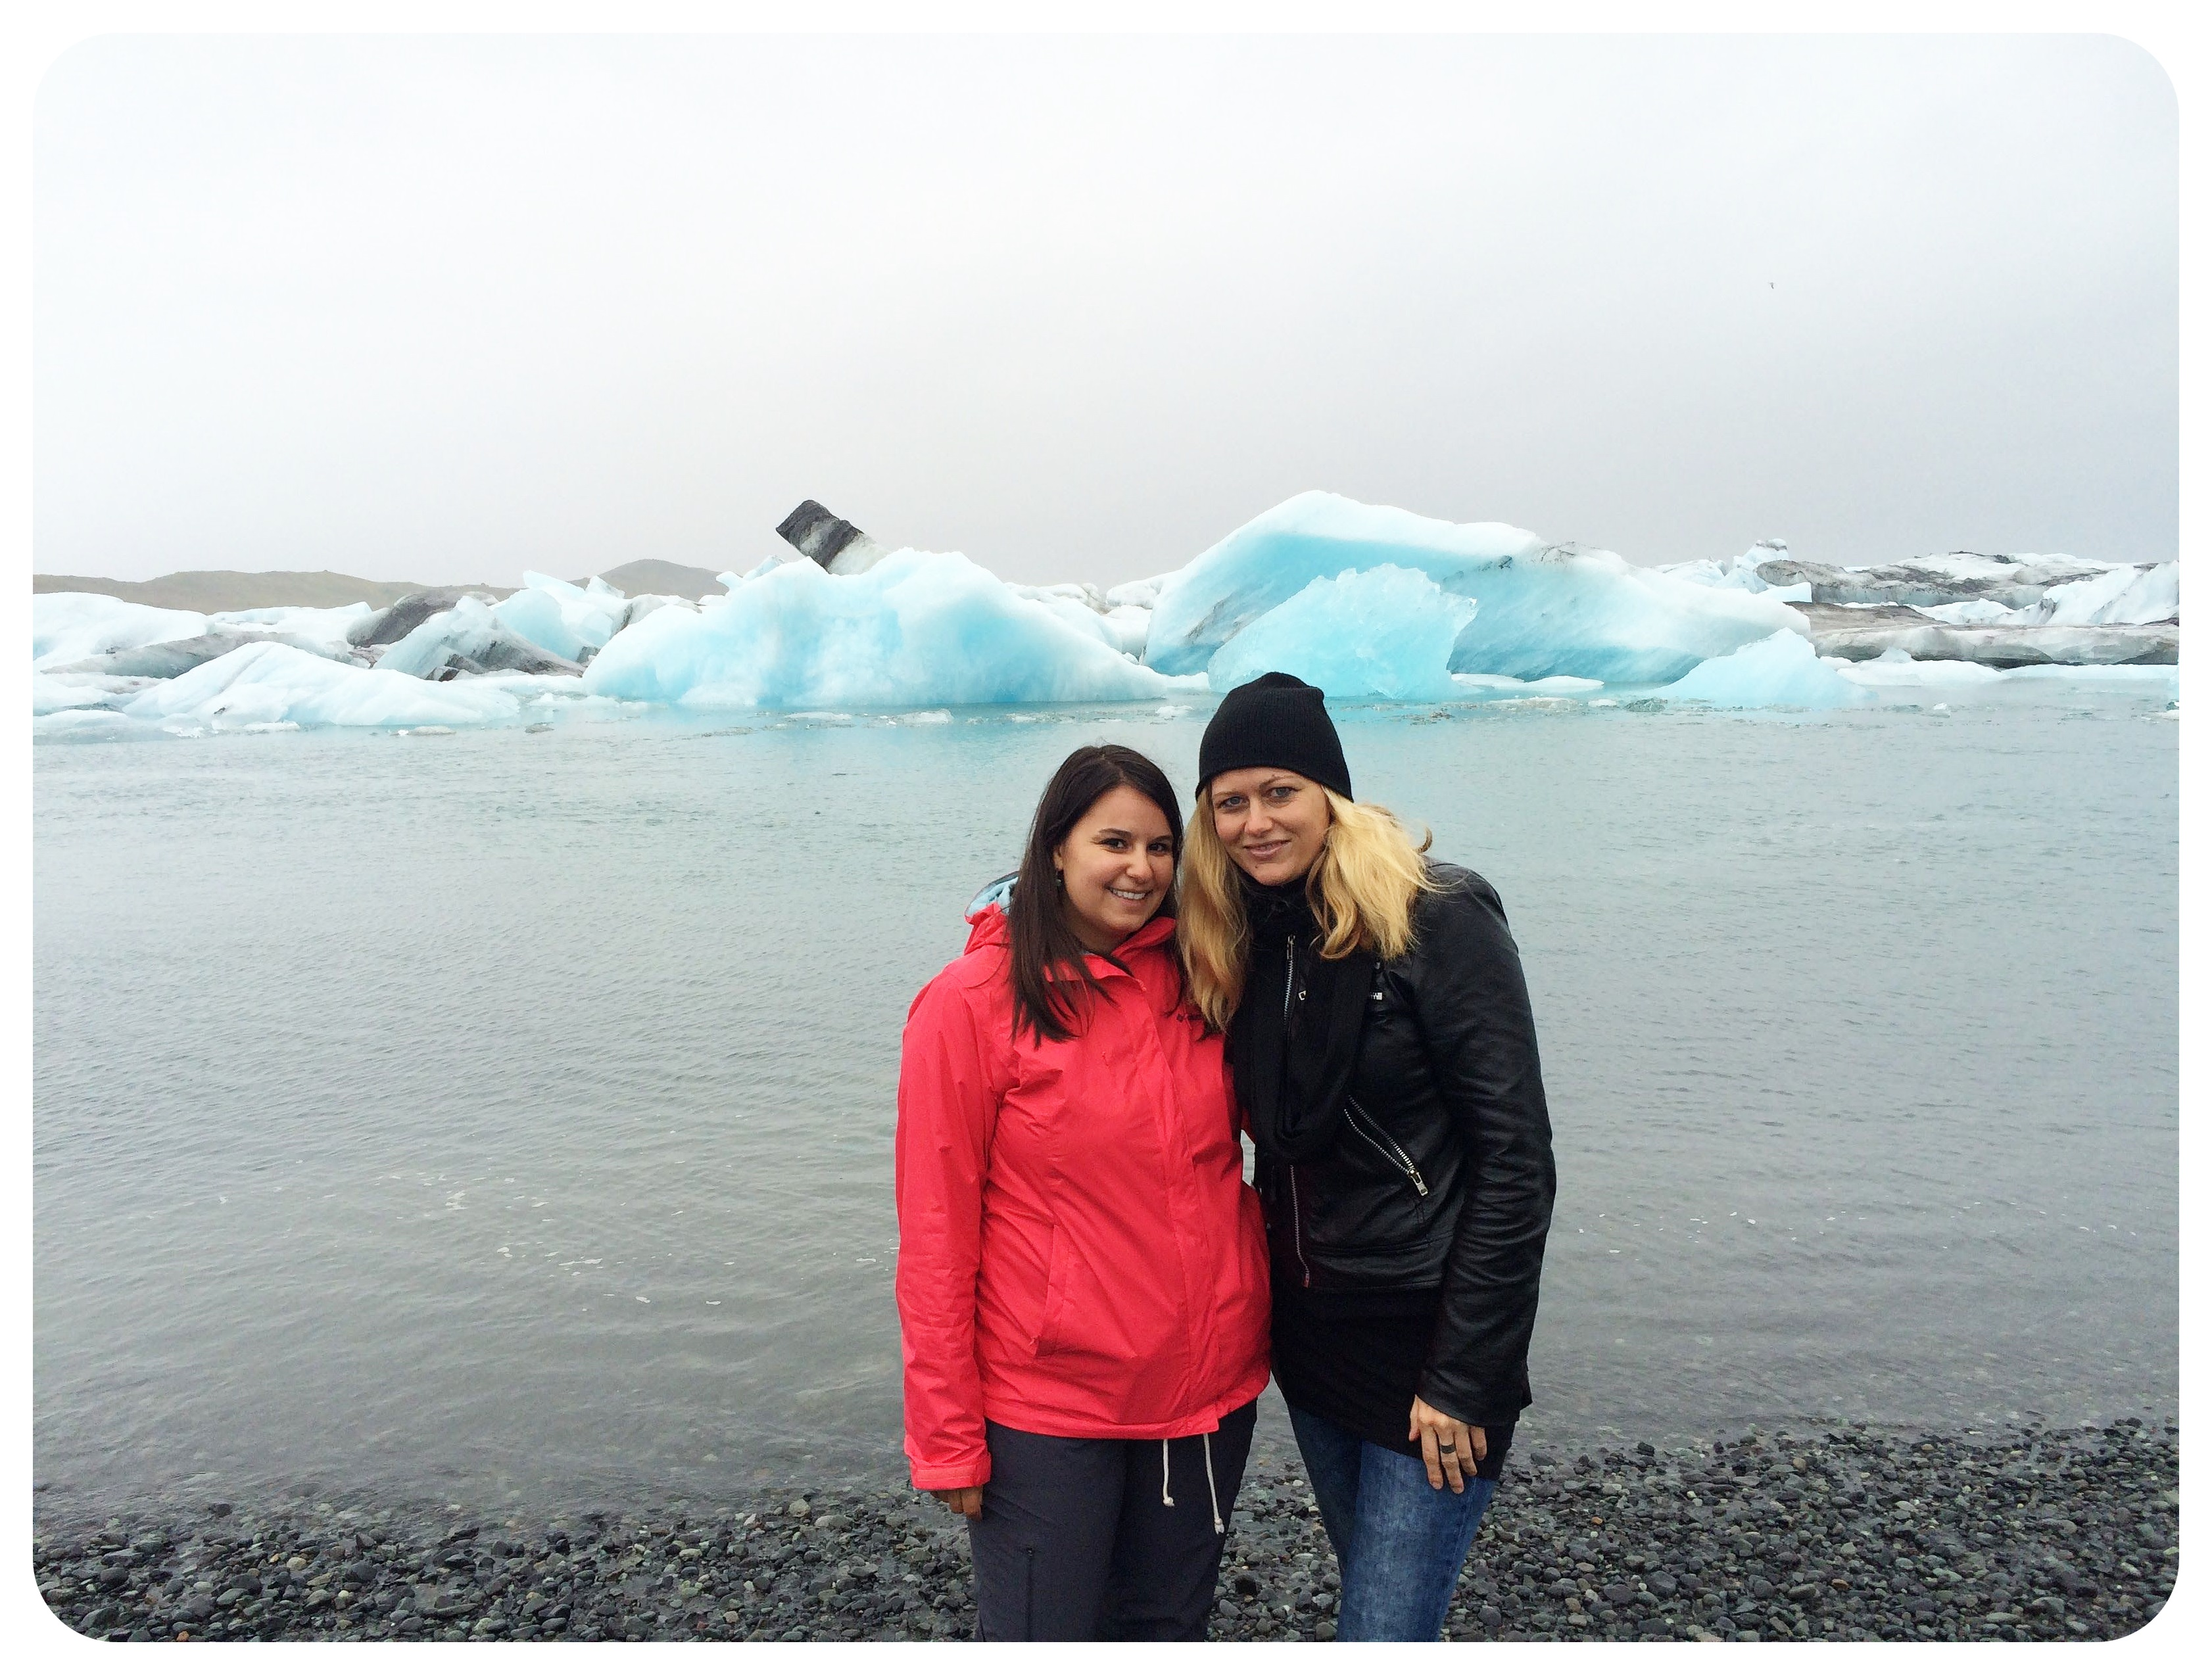 rease and dani glacier lagoon ice iceland